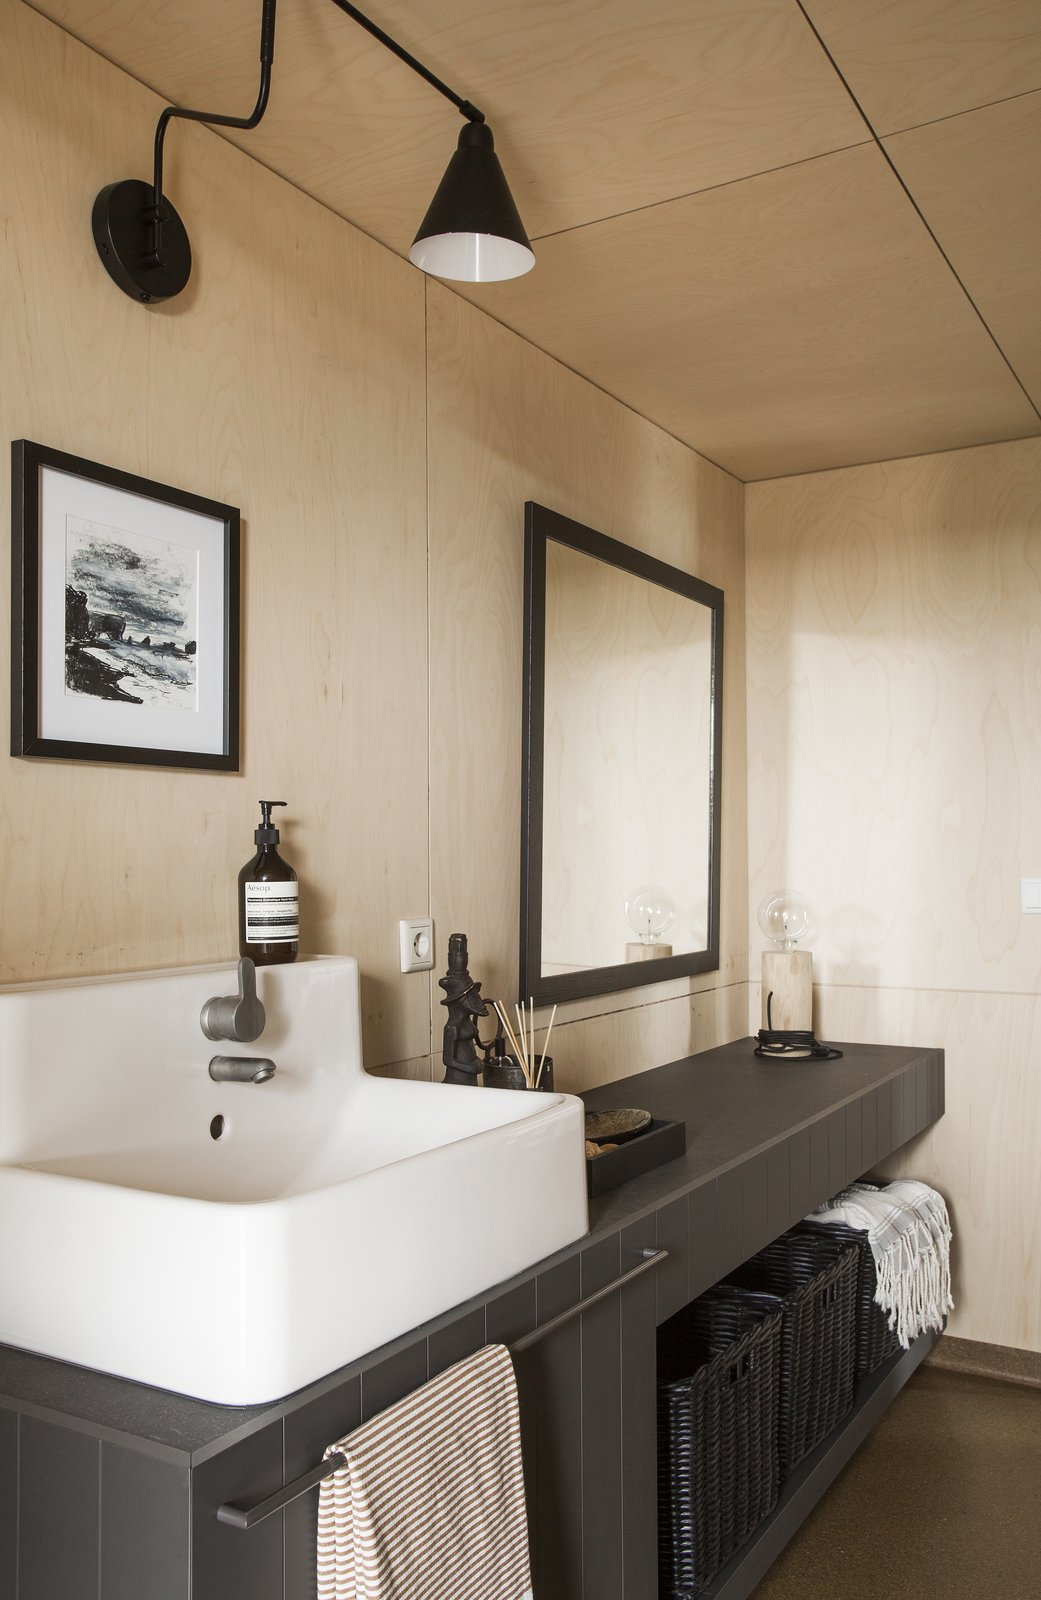 Bath Room, Tile Counter, Vessel Sink, Wall Lighting, and Table Lighting  Photo 9 of 12 in Get in Touch With Iceland's Rugged Landscape While Staying at This Modern Coastal Barn